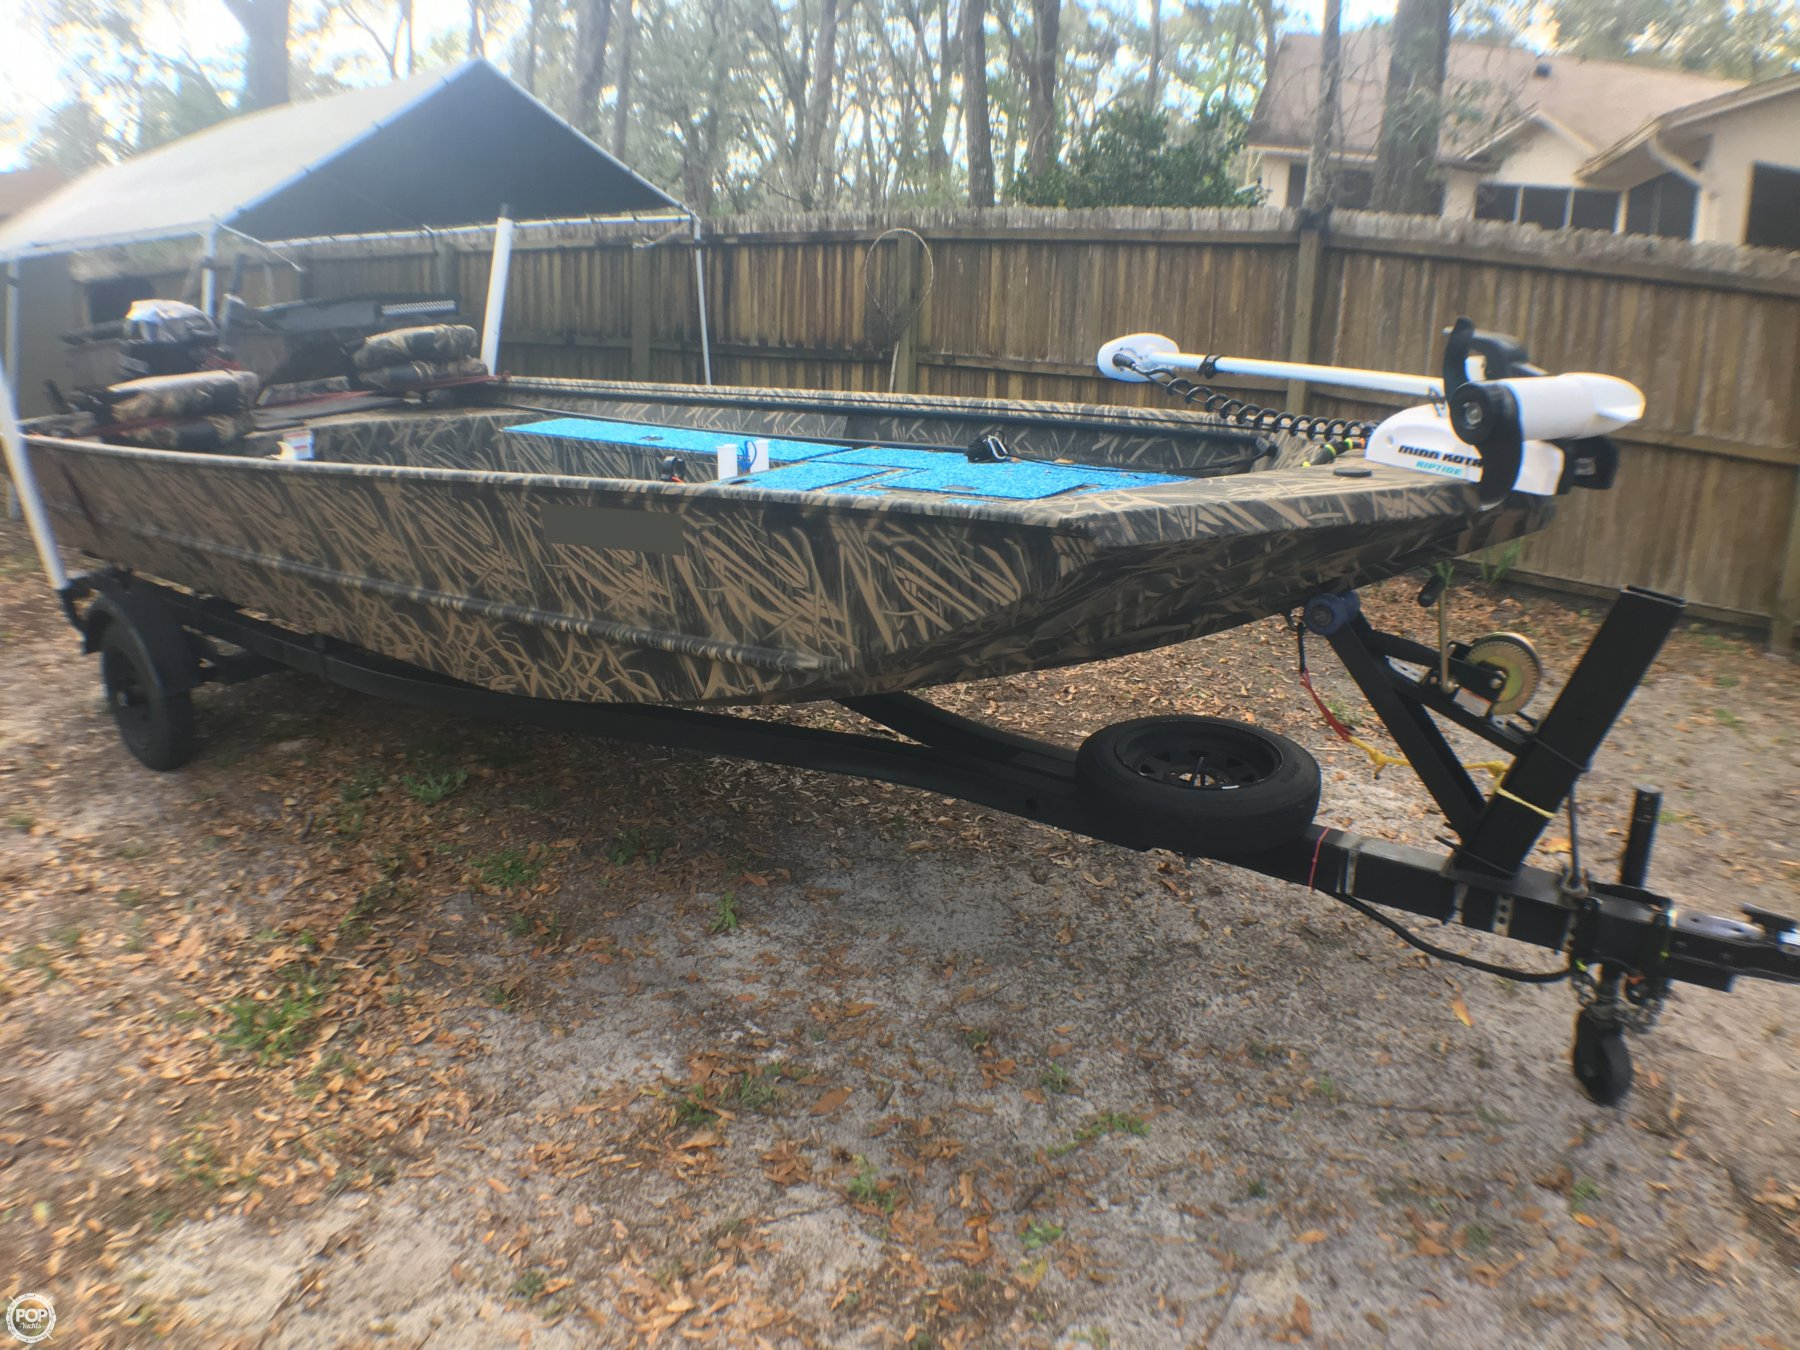 Duck Hunting Boats For Sale >> Lowe Roughneck 1650 Dt Boat For Sale In Apopka Fl For 11 500 145594